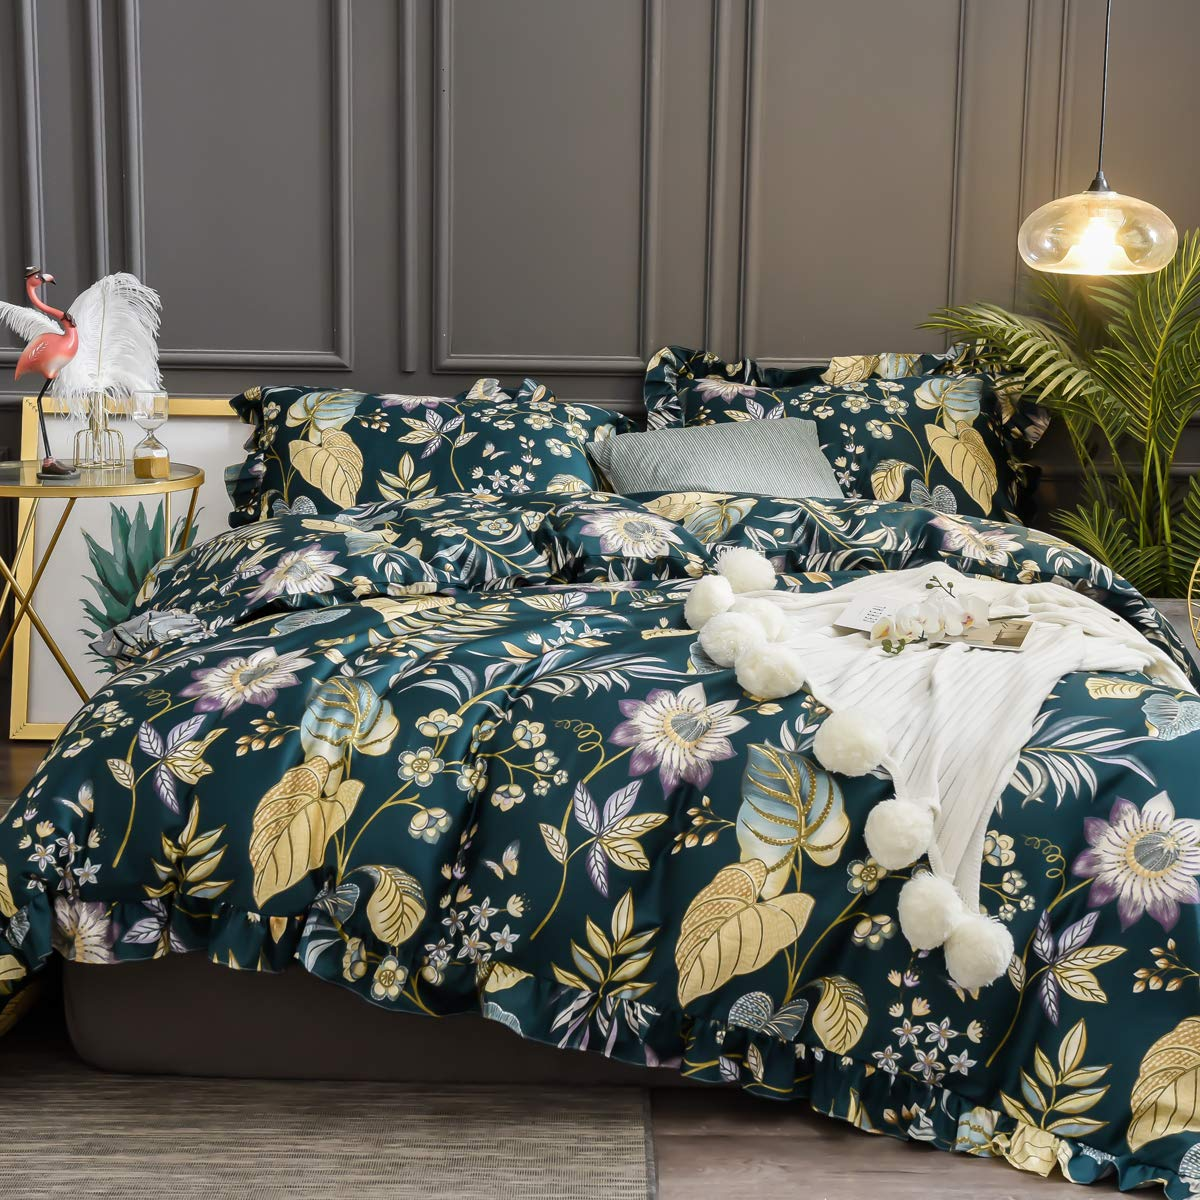 Softta Duvet Cover King Bedding Ruffle Floral Teal 3Pcs Tropical Plam Leaves Flower Quilt Cover Vintage and Farmhouse 100% Egyptian Cotton 800 TC Purple Yellow Colorful Hidden Zipper Closure